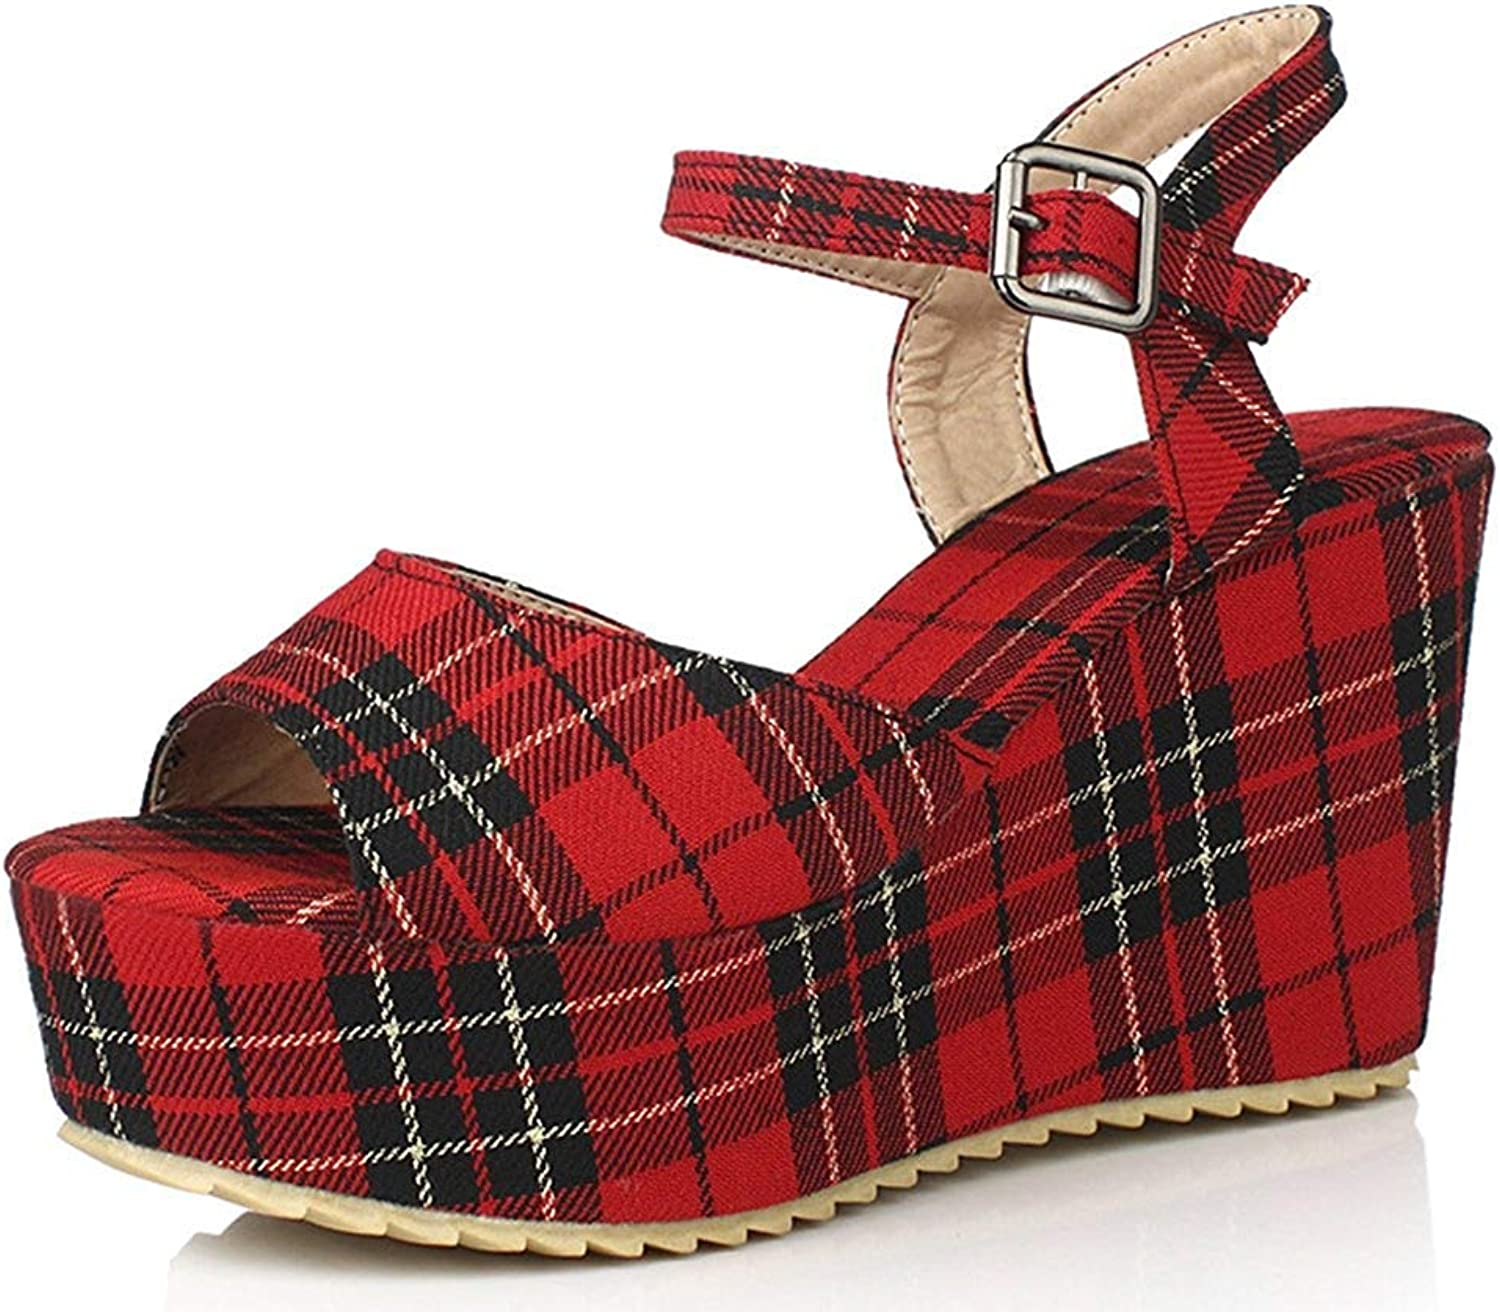 Gcanwea Women's Classic Open Toe Checkered Ankle Strap Wedge Heels Sandals to Wear with Jeans Smart Fashion No Grinding Feet to Wear with Dress for Girls Comfortable Black 4 M US Sandals